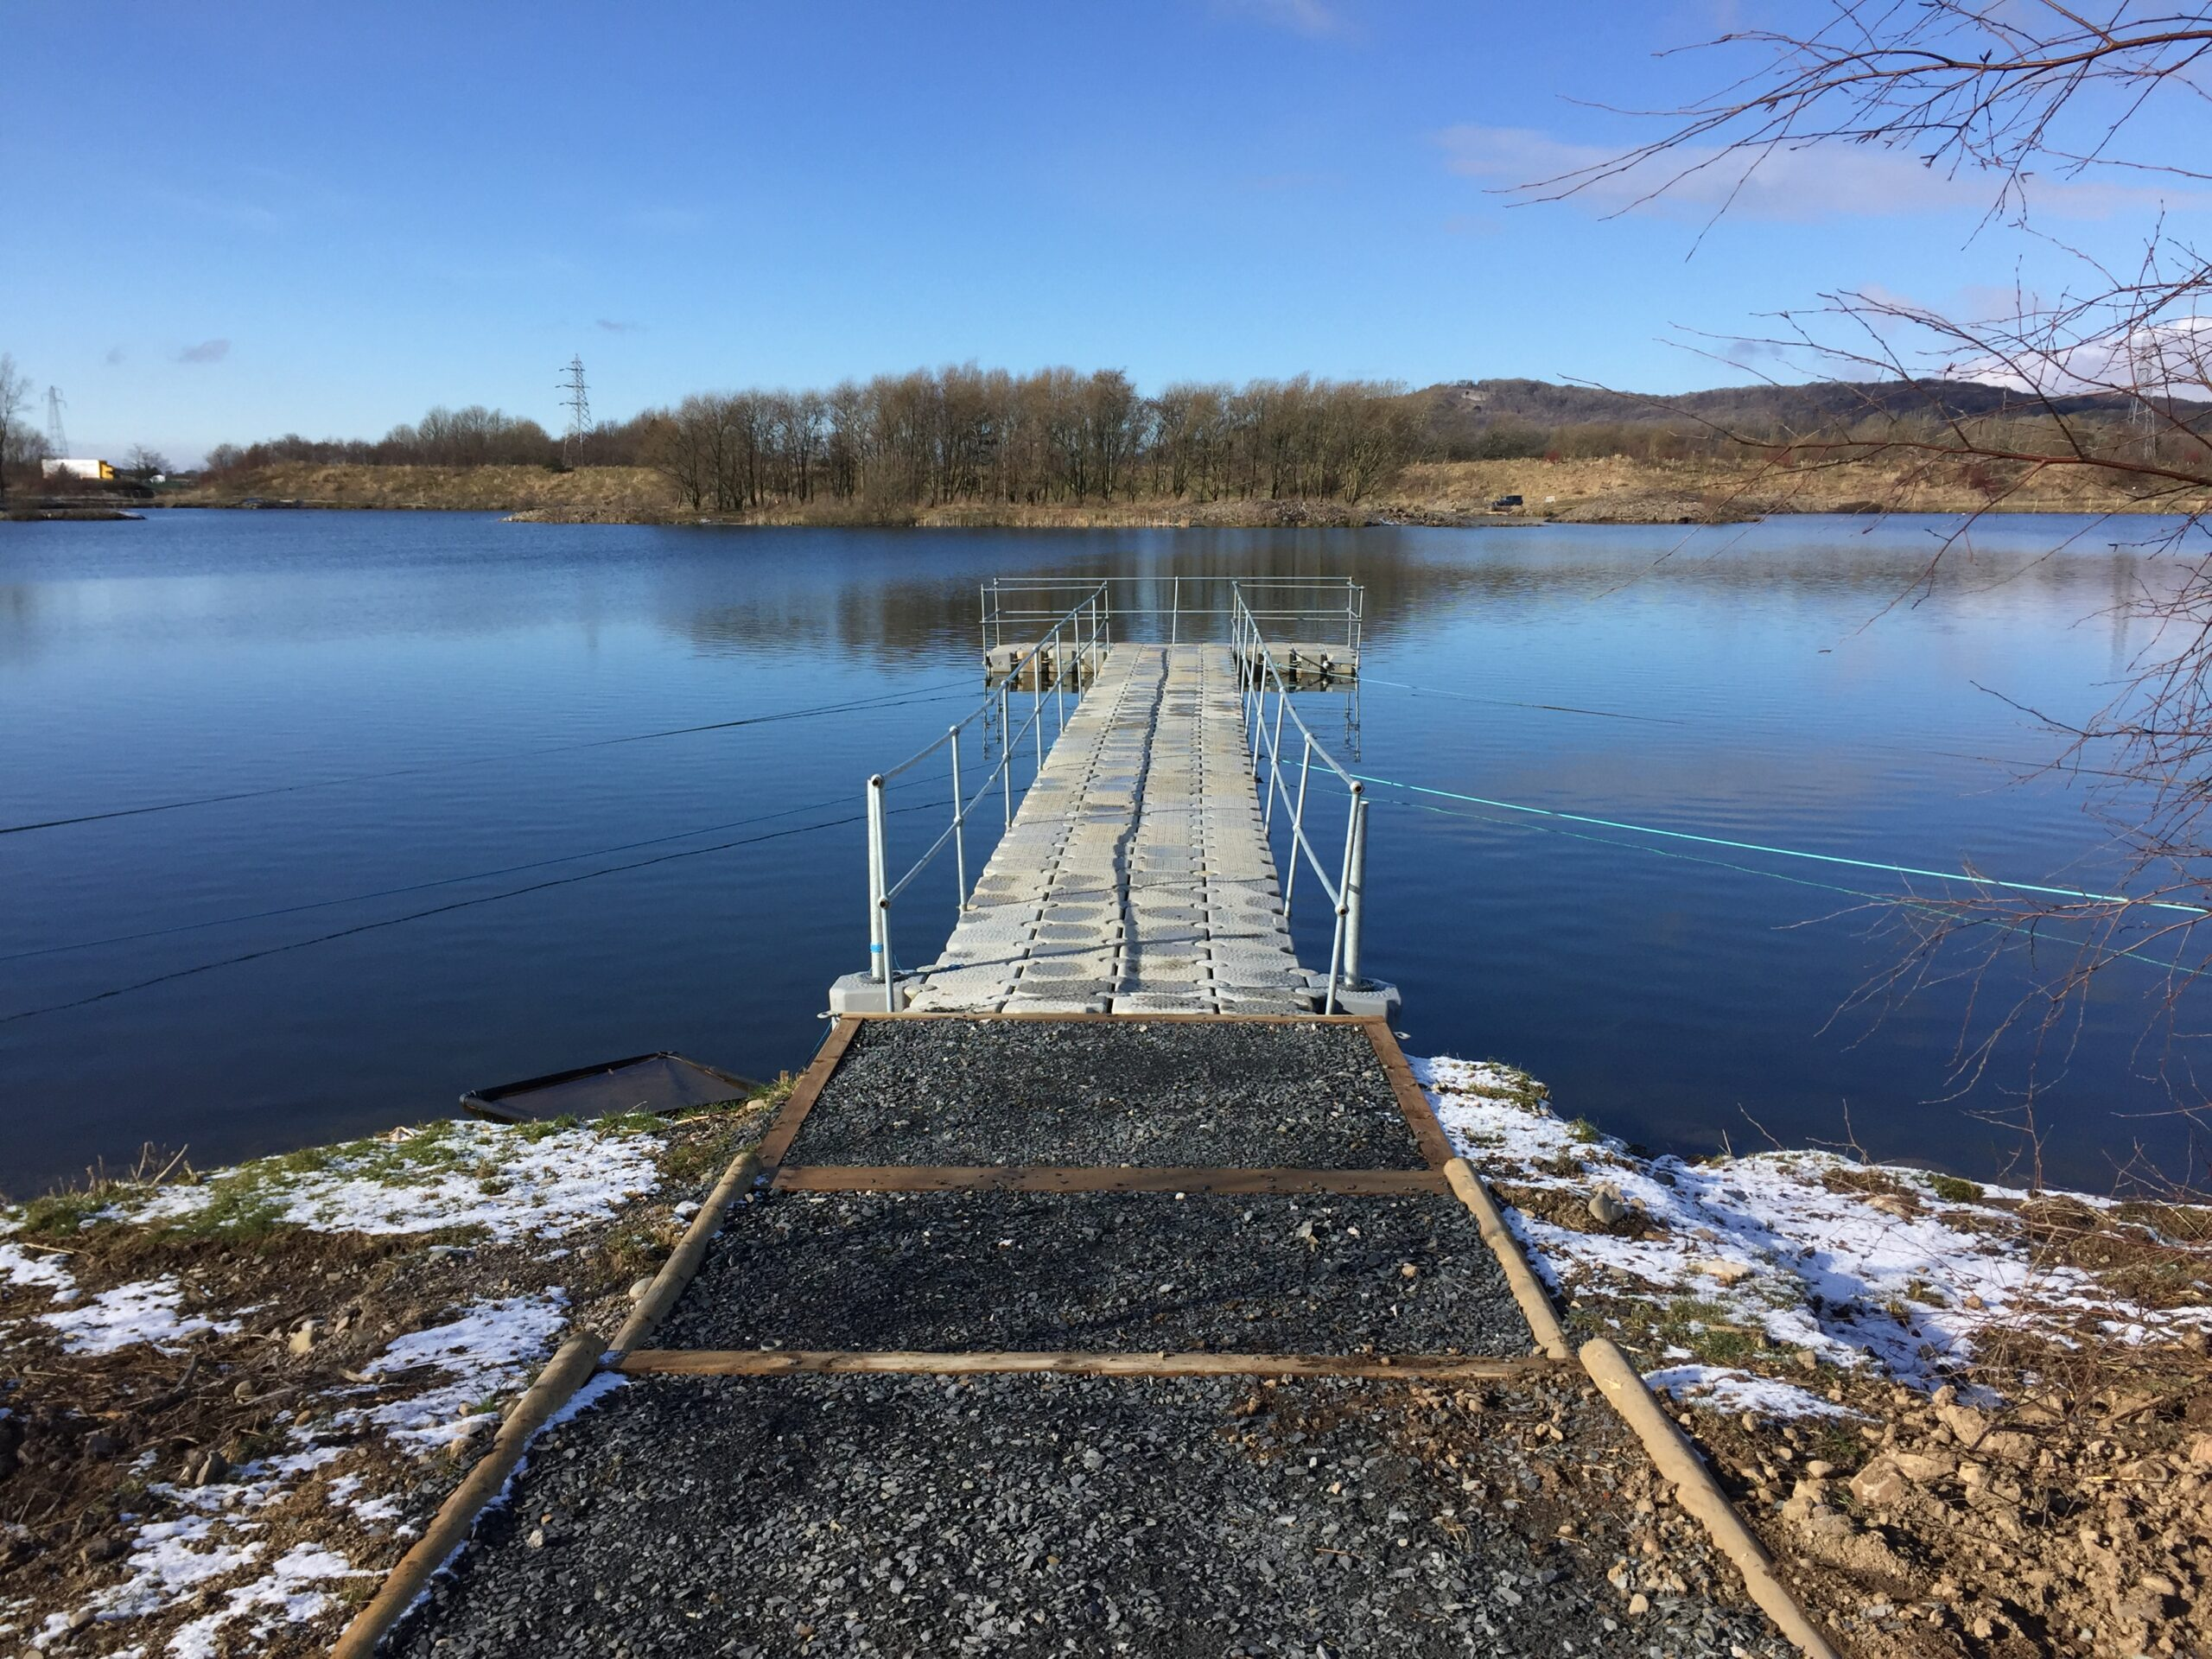 Reconfiguration of existing fishing lakes